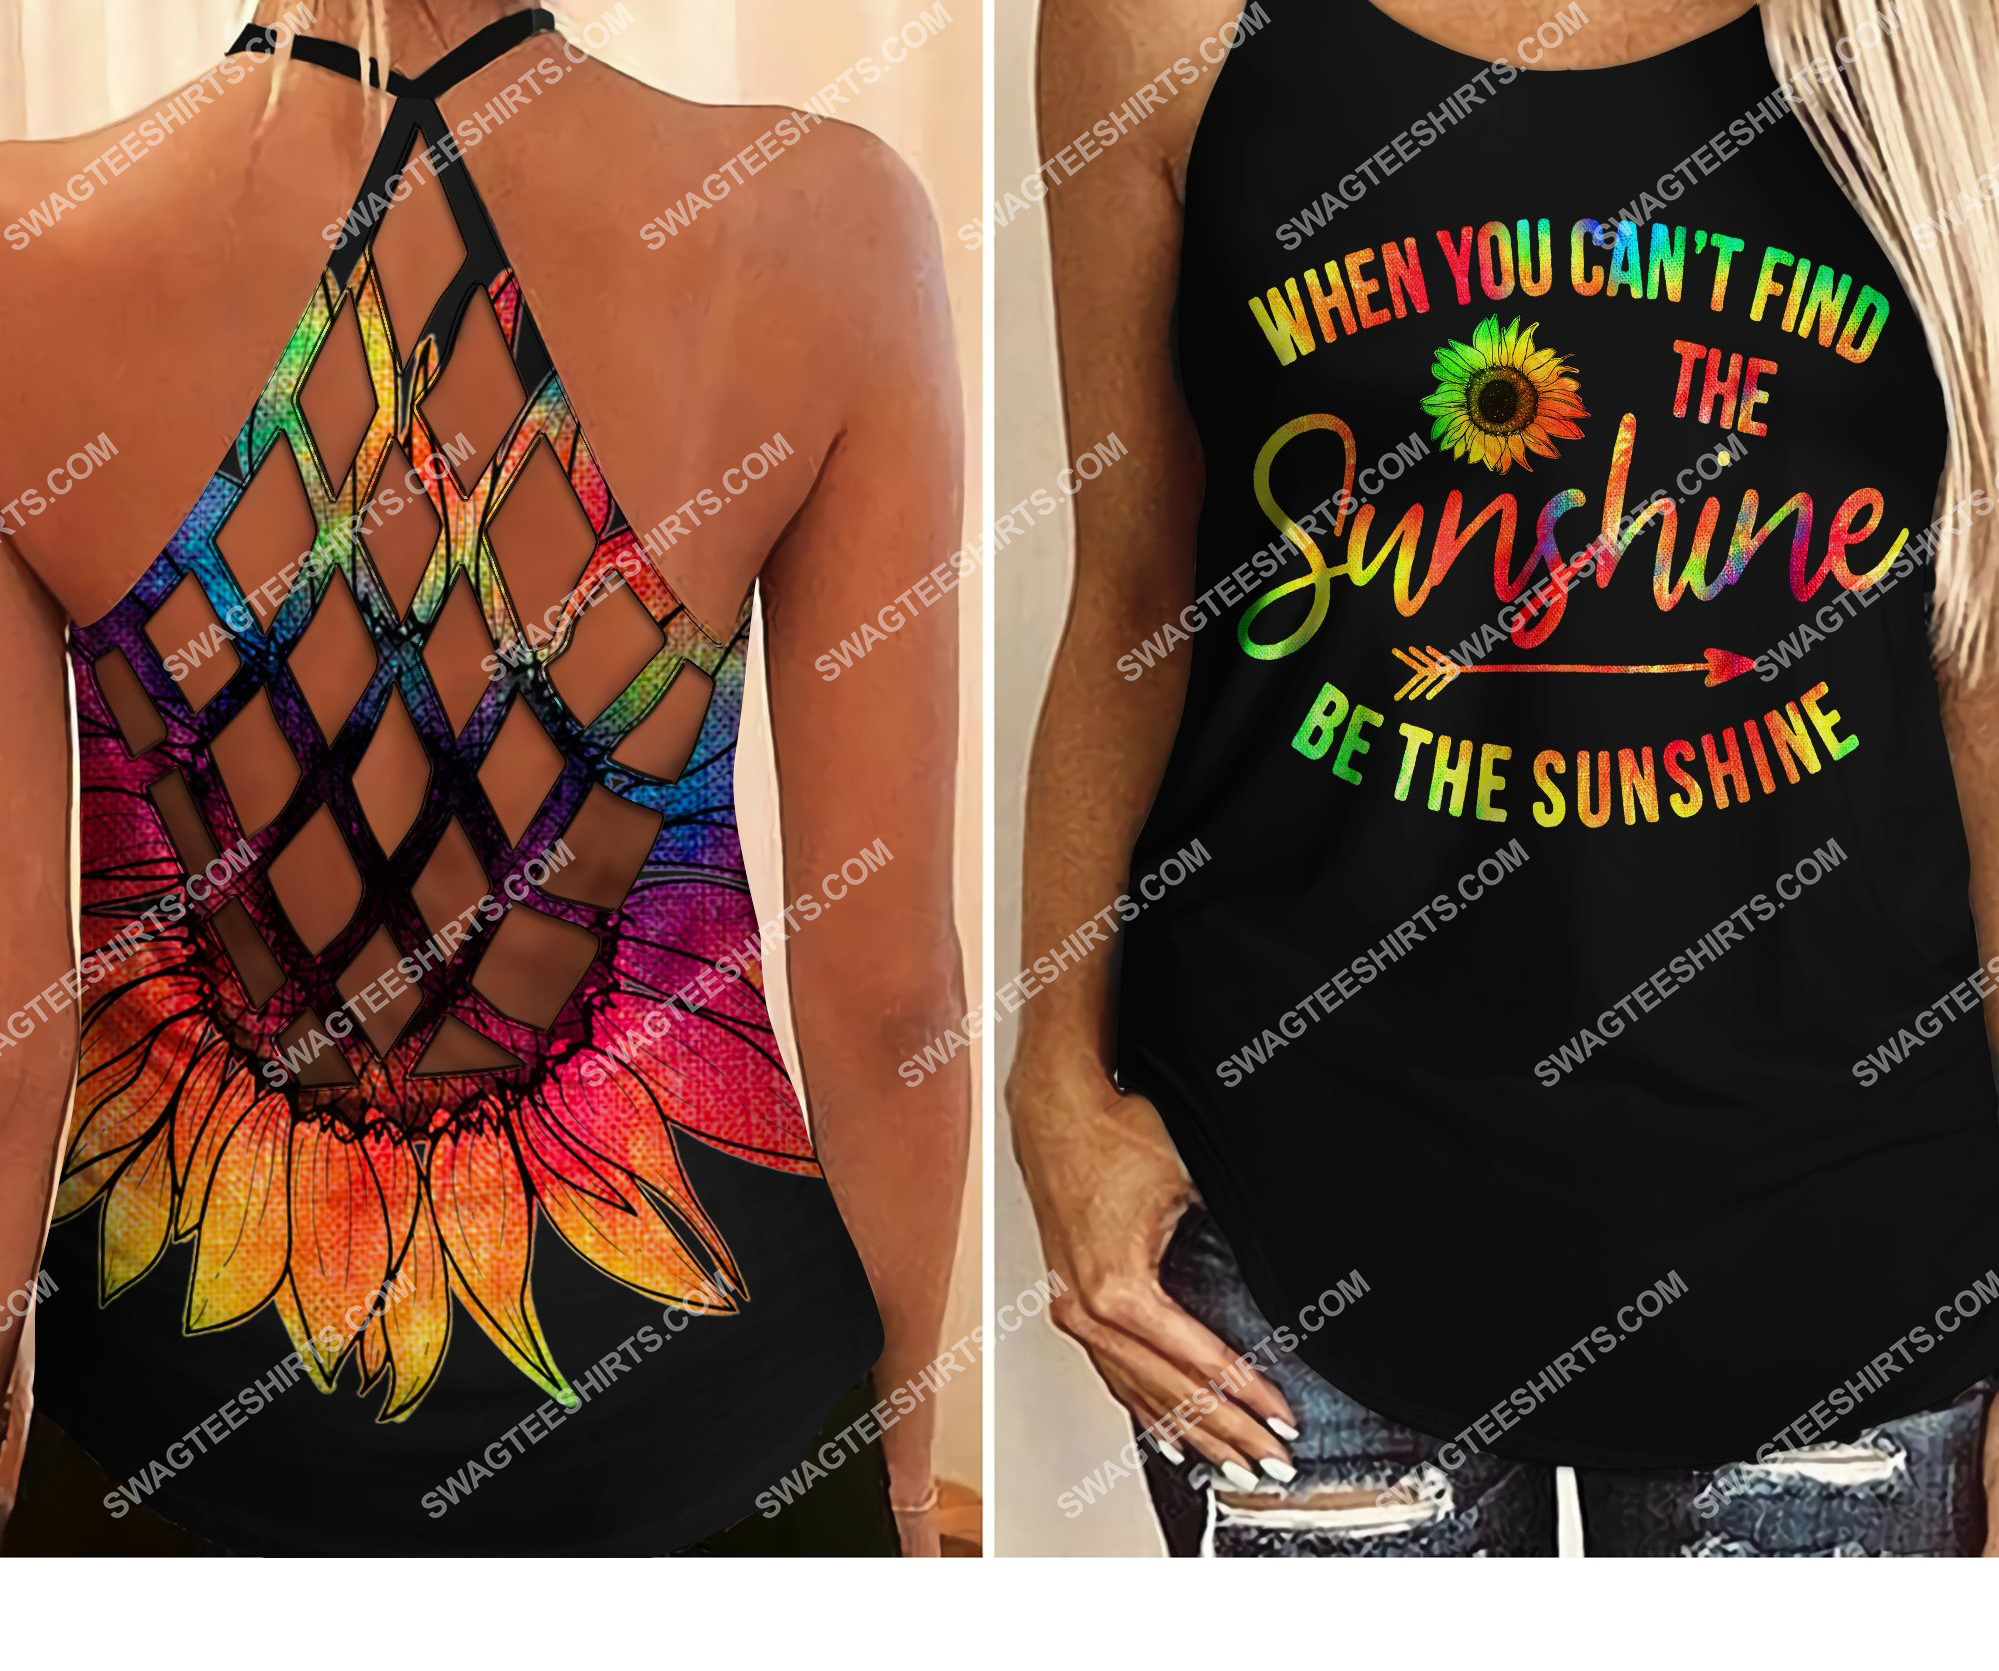 [Top-selling] sunflower be the sunshine all over printed strappy back tank top - maria